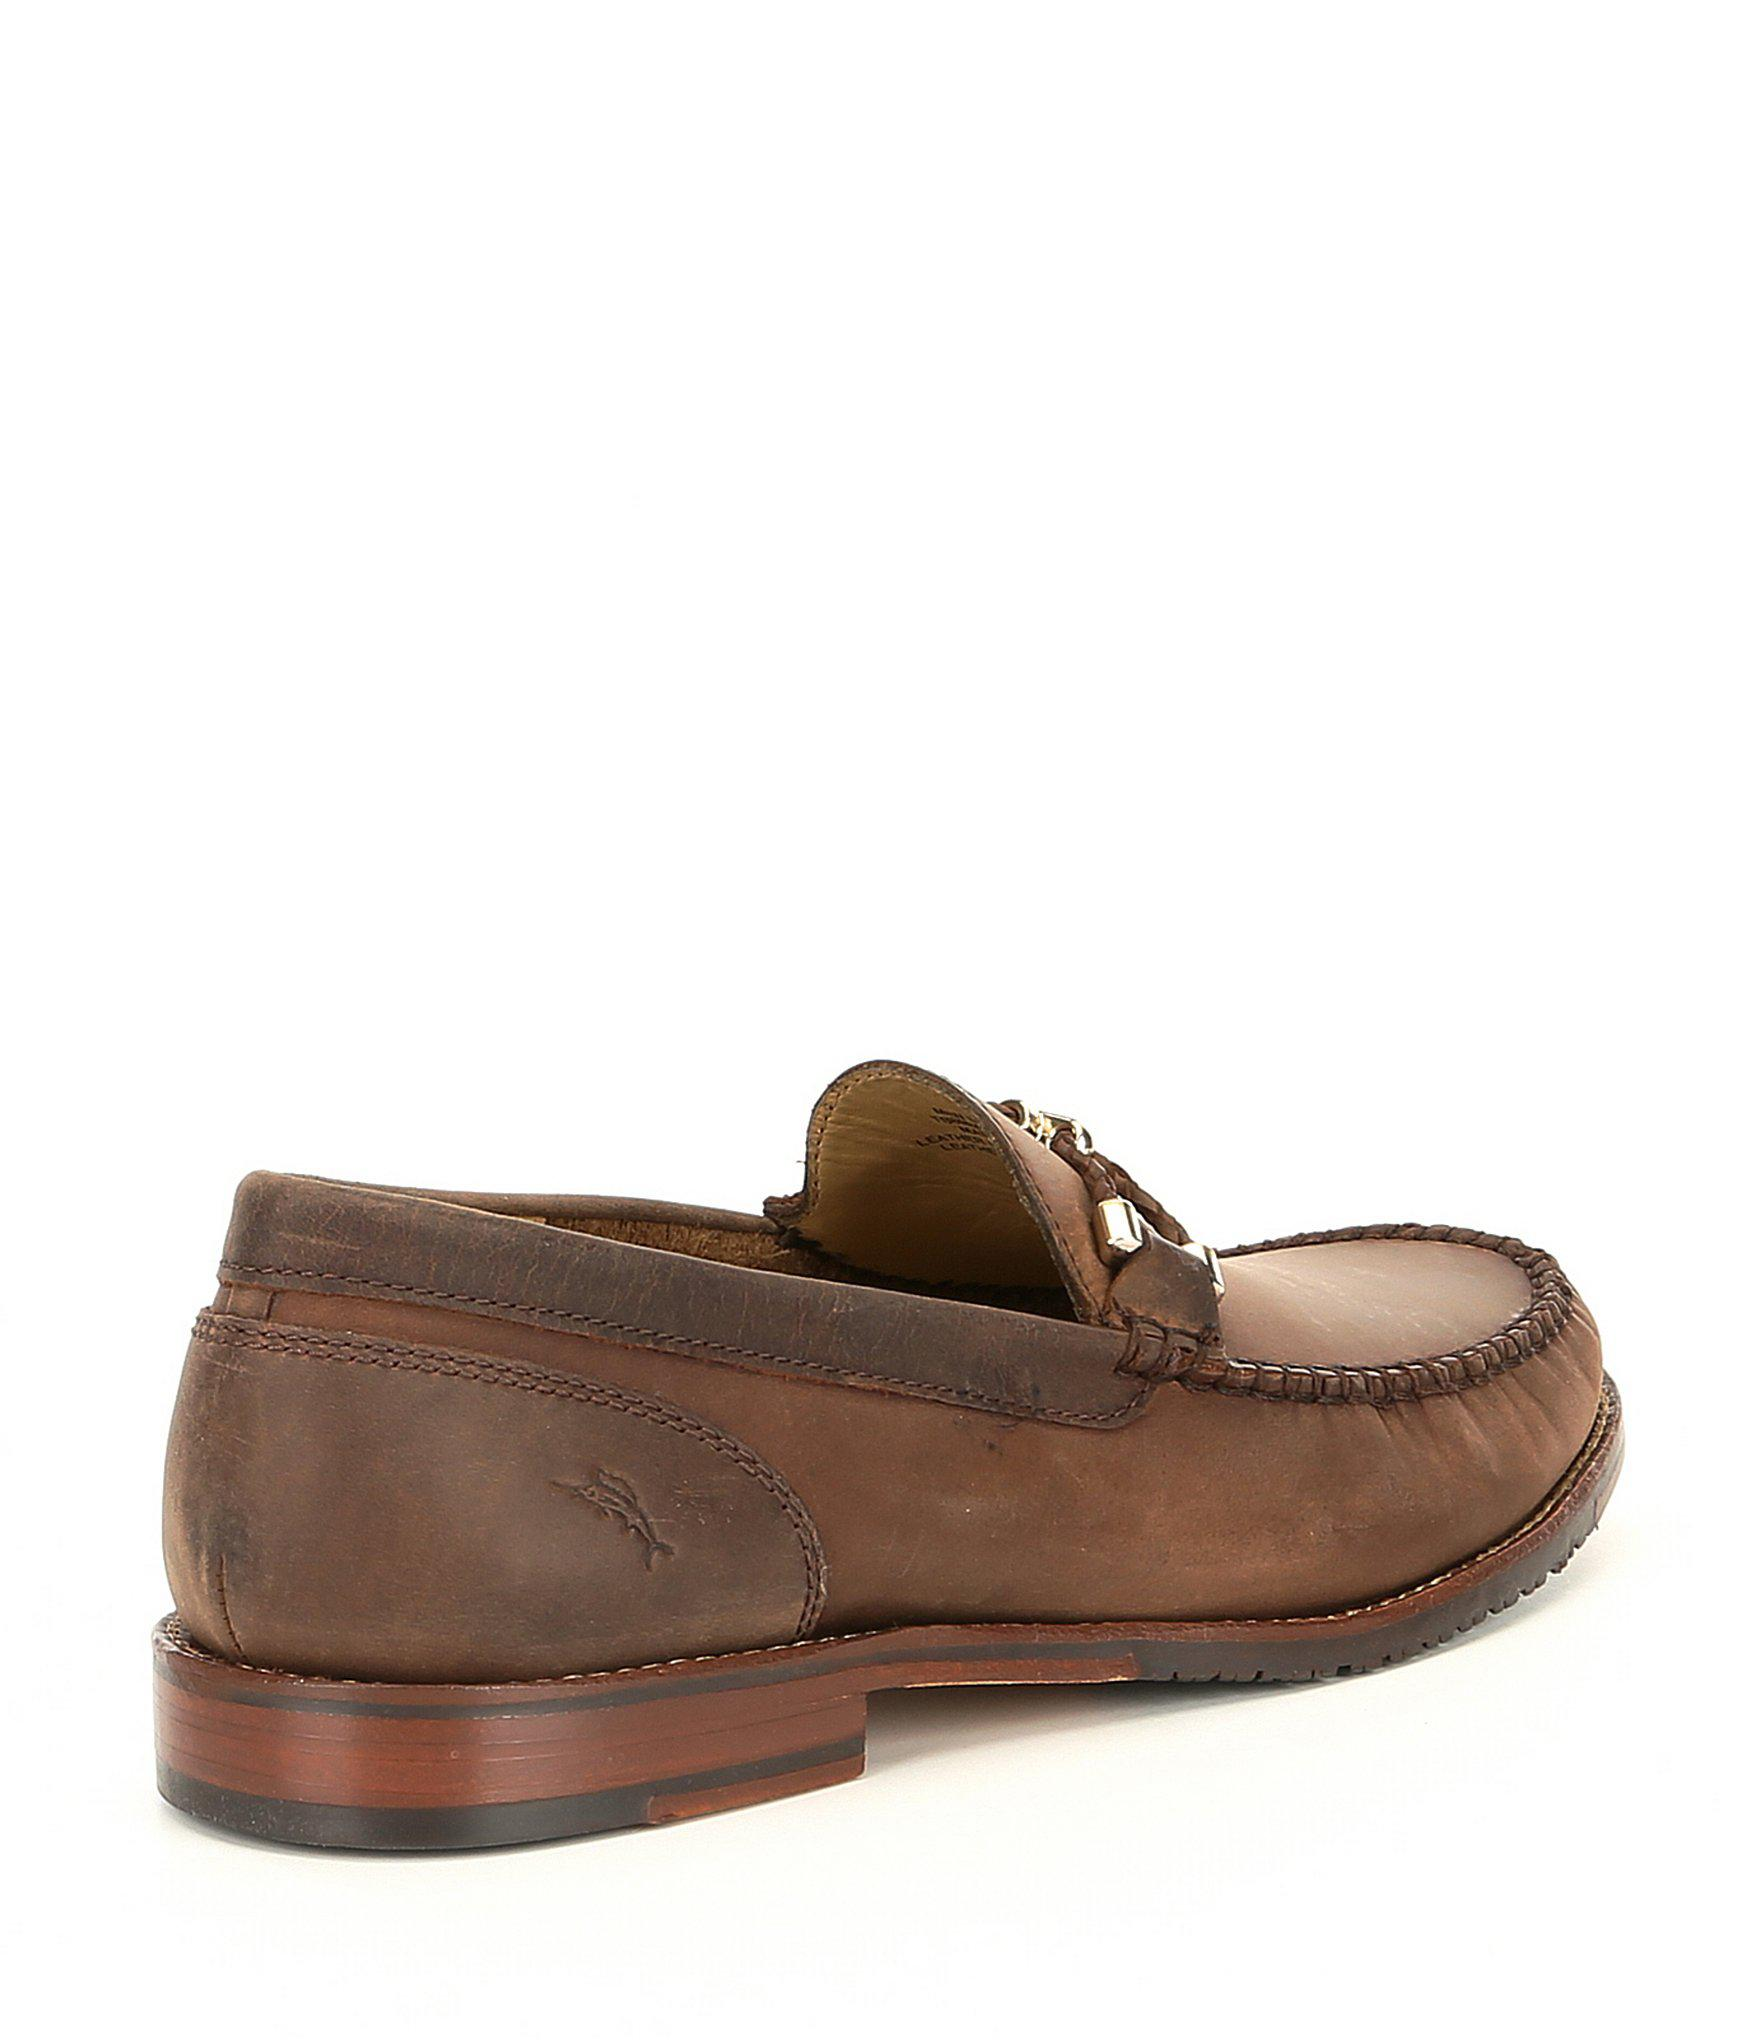 a106e571ce9 Tommy Bahama - Brown Men s Papio Leather Loafers for Men - Lyst. View  fullscreen